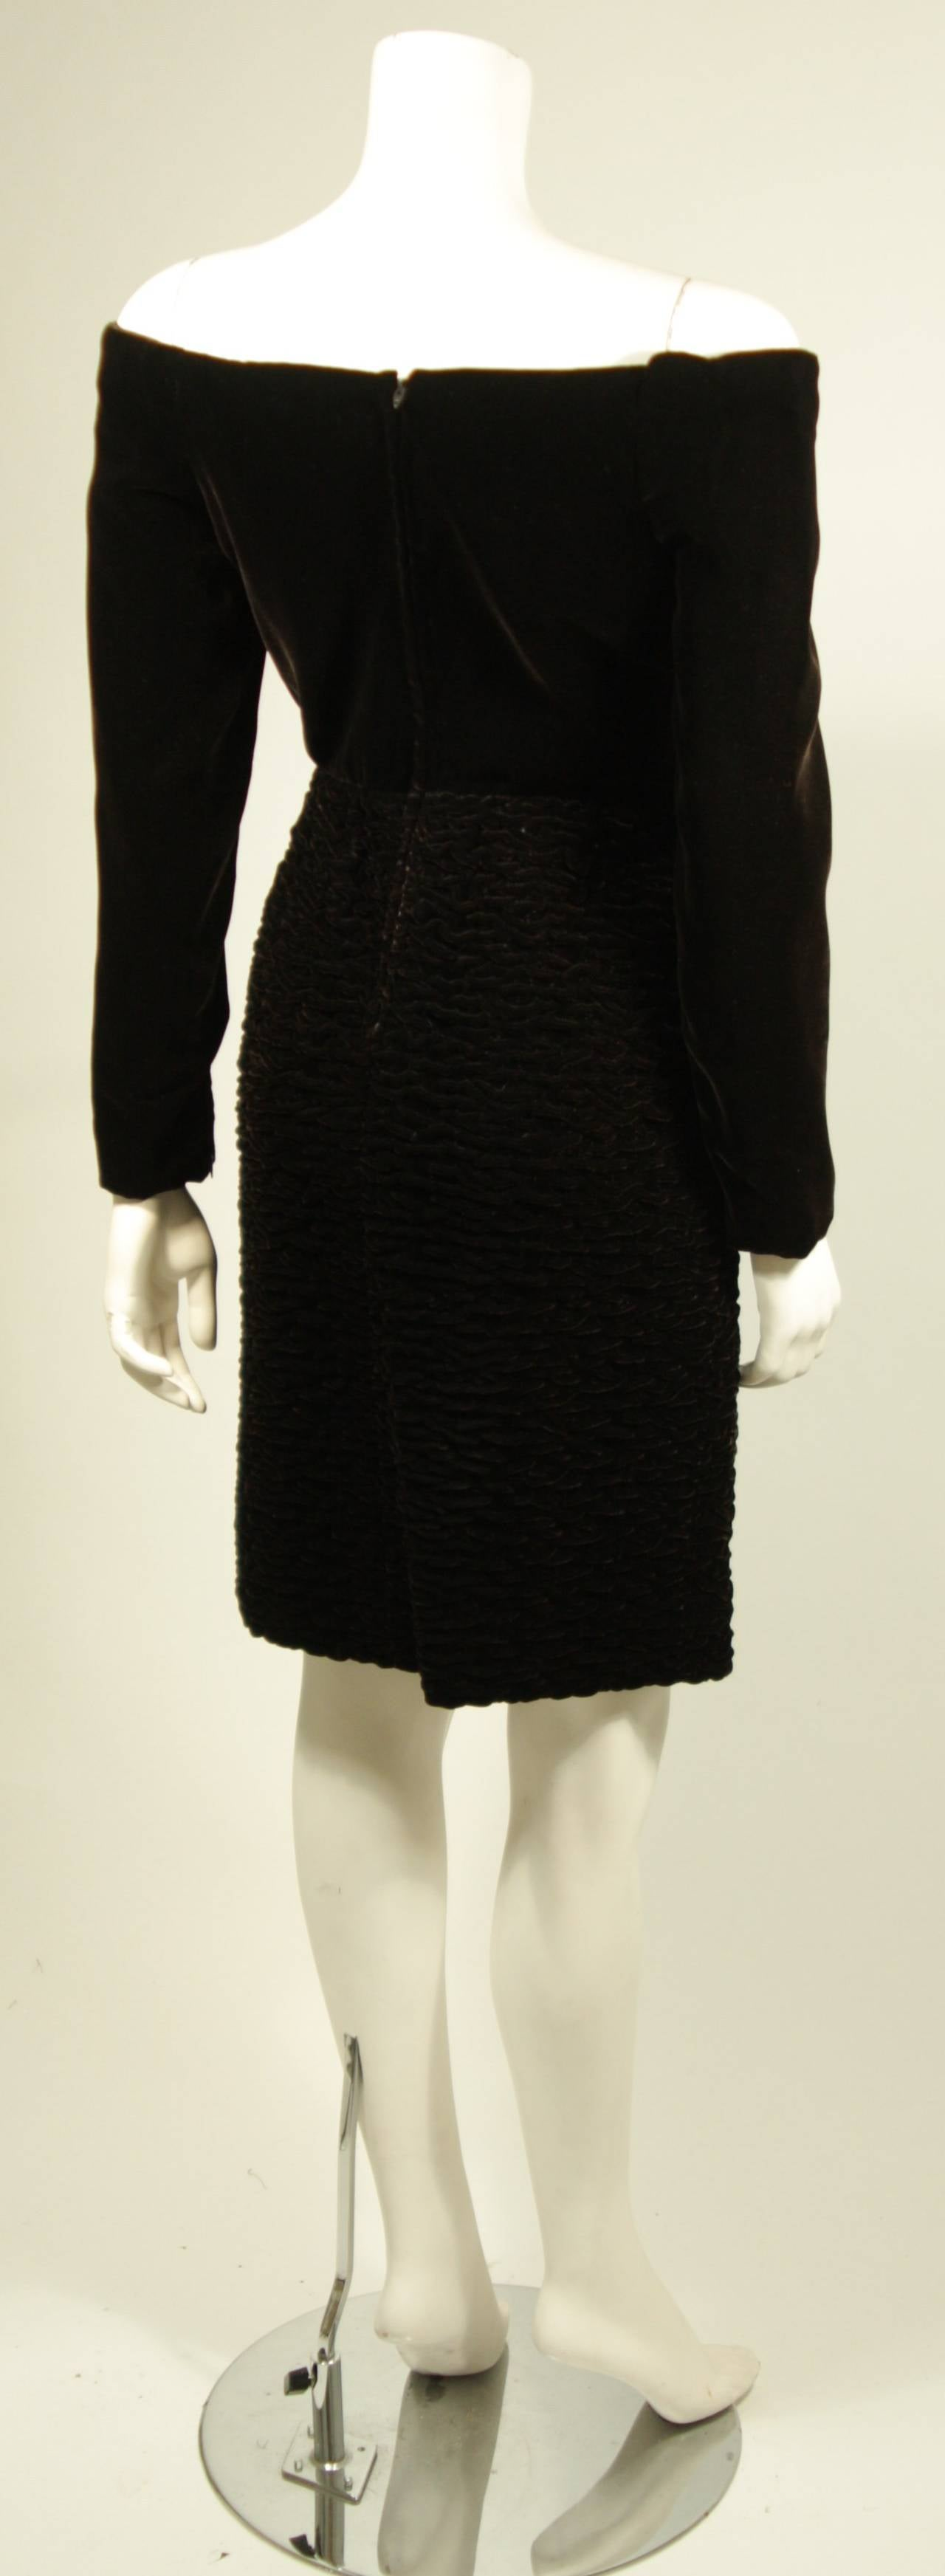 Oscar De La Renta Brown Velvet Cocktail Dress with Ruched Skirt Size 6 6